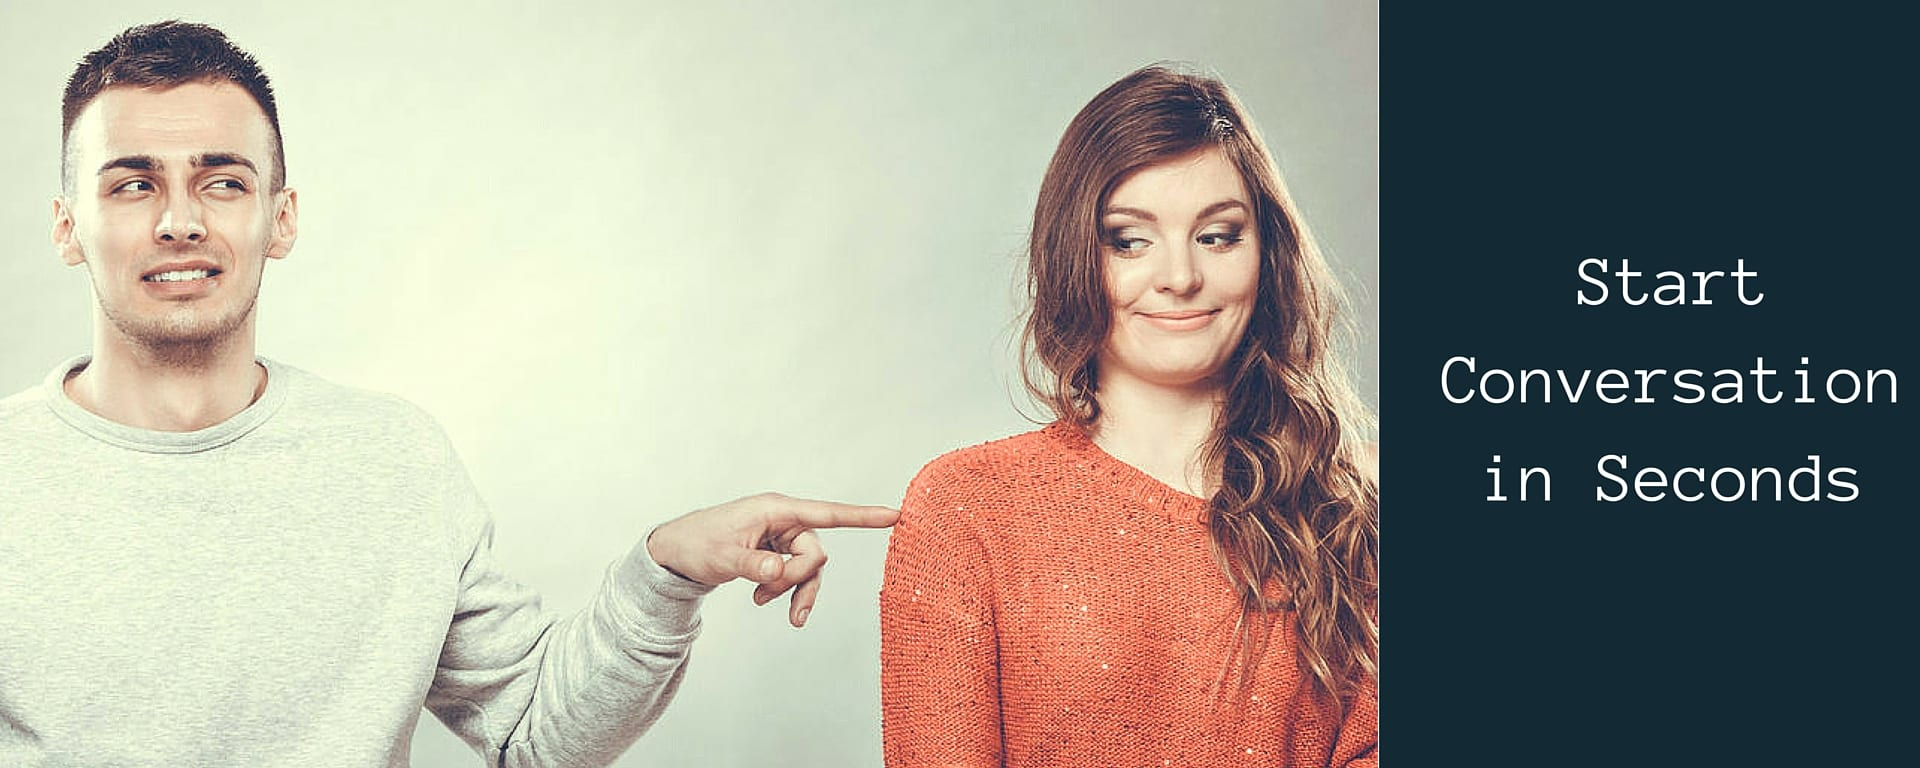 5 Tips to Start a conversation with anyone